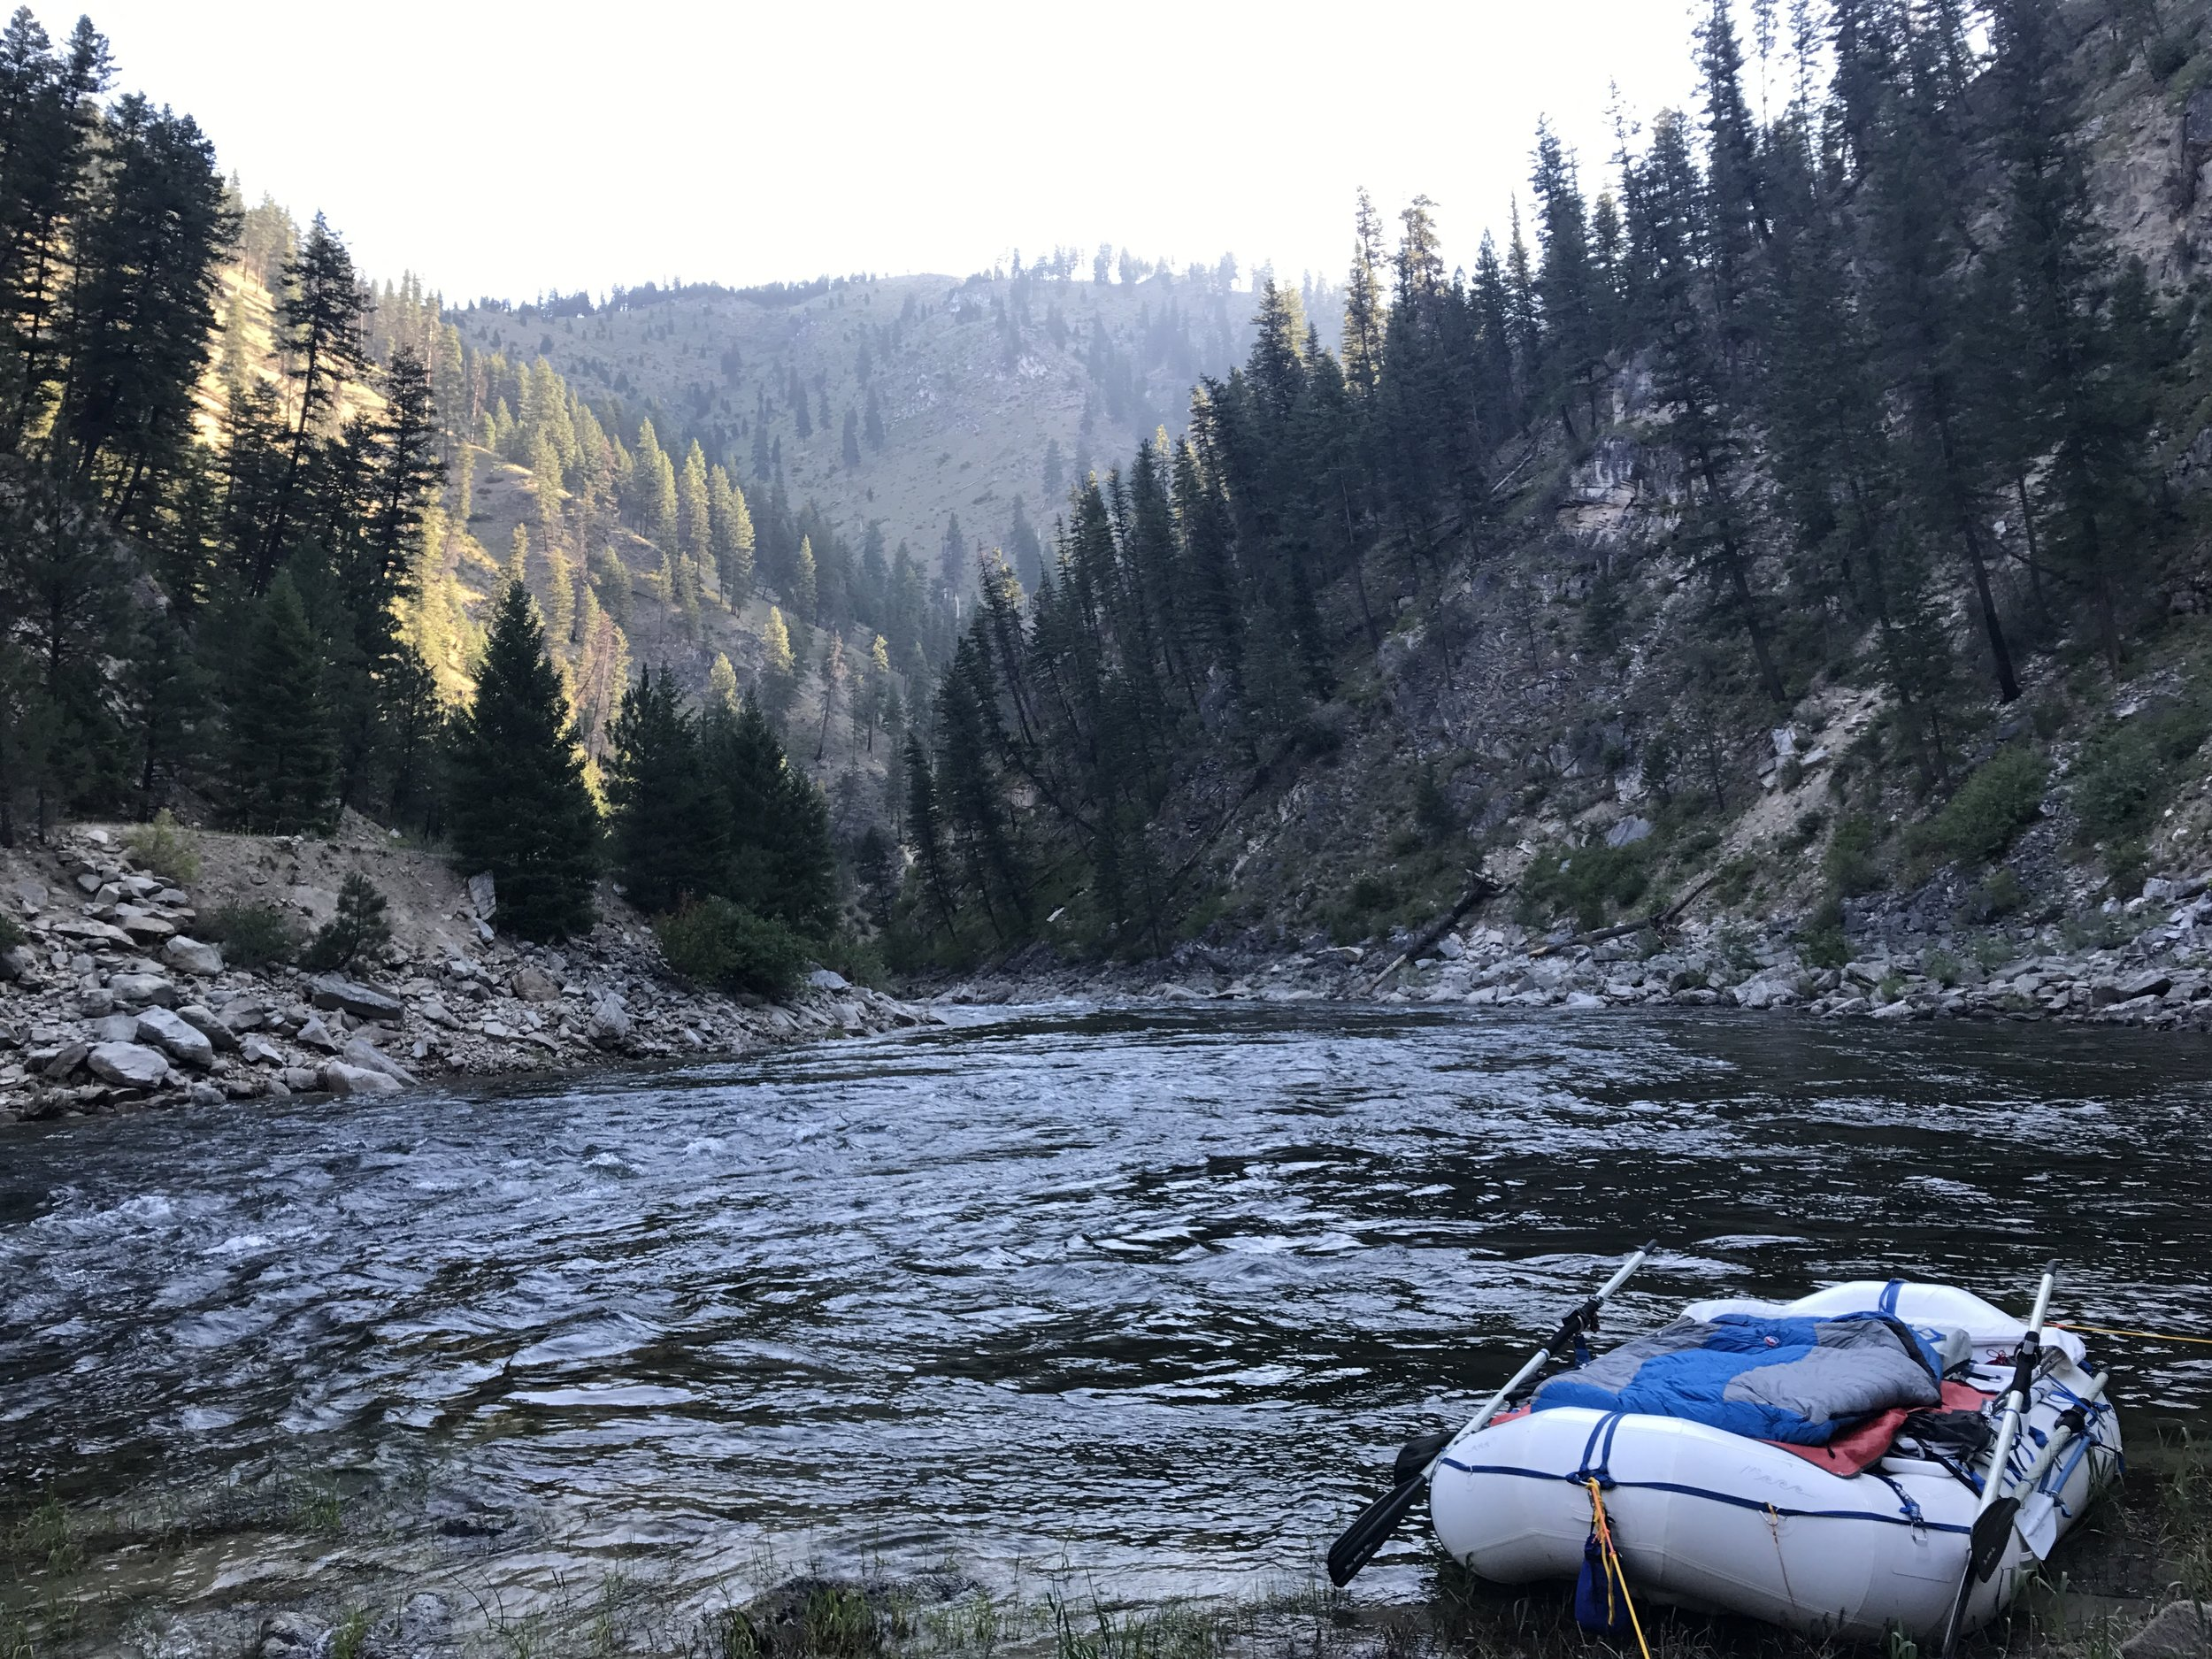 Perfect South Fork Salmon spot  @Nate Ostis